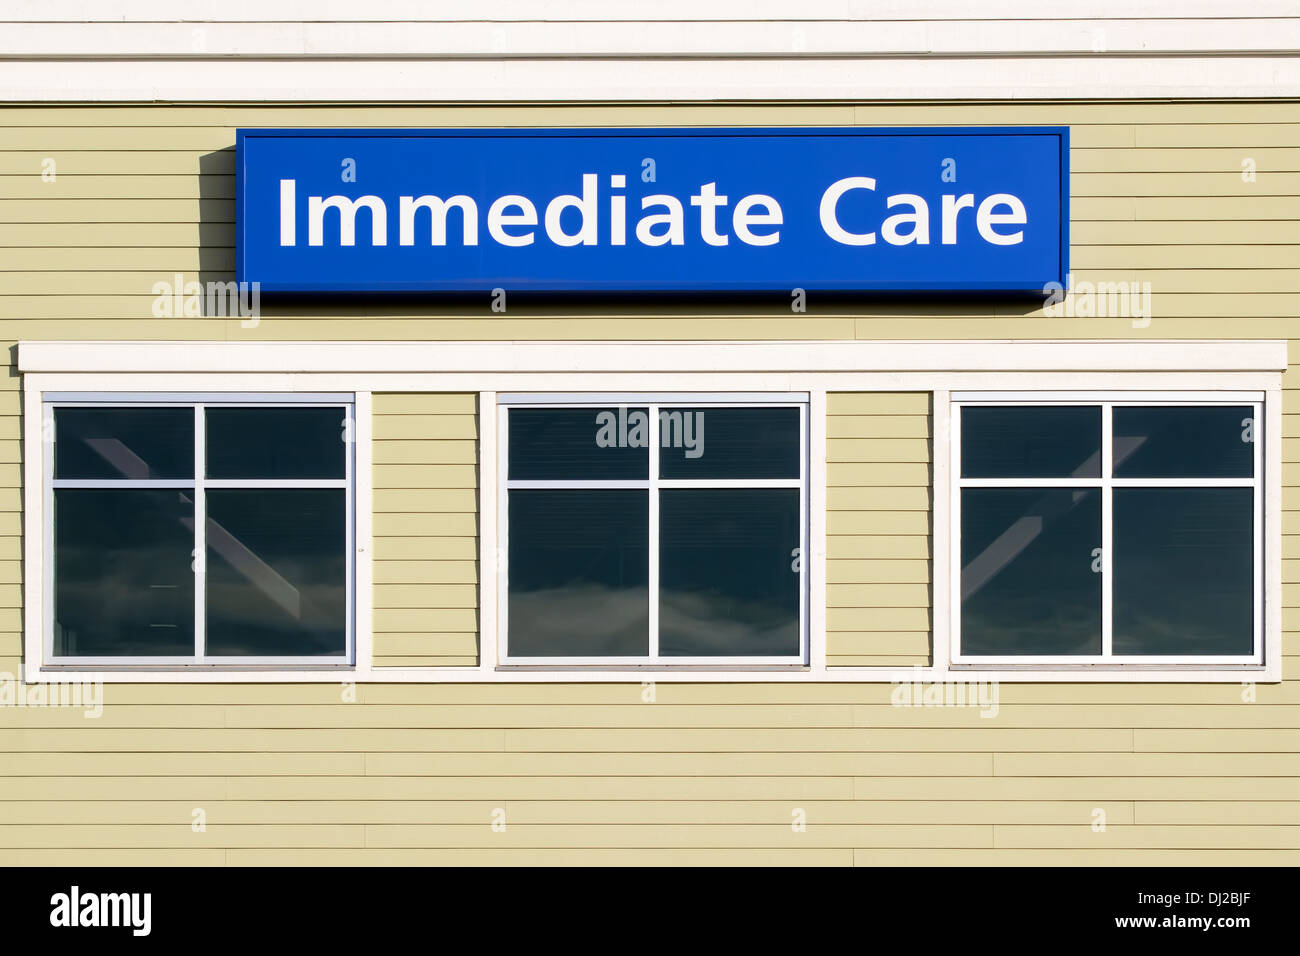 Immediate Care Sign Above Windows Outside Hospital or Emergency Clinic Building - Stock Image